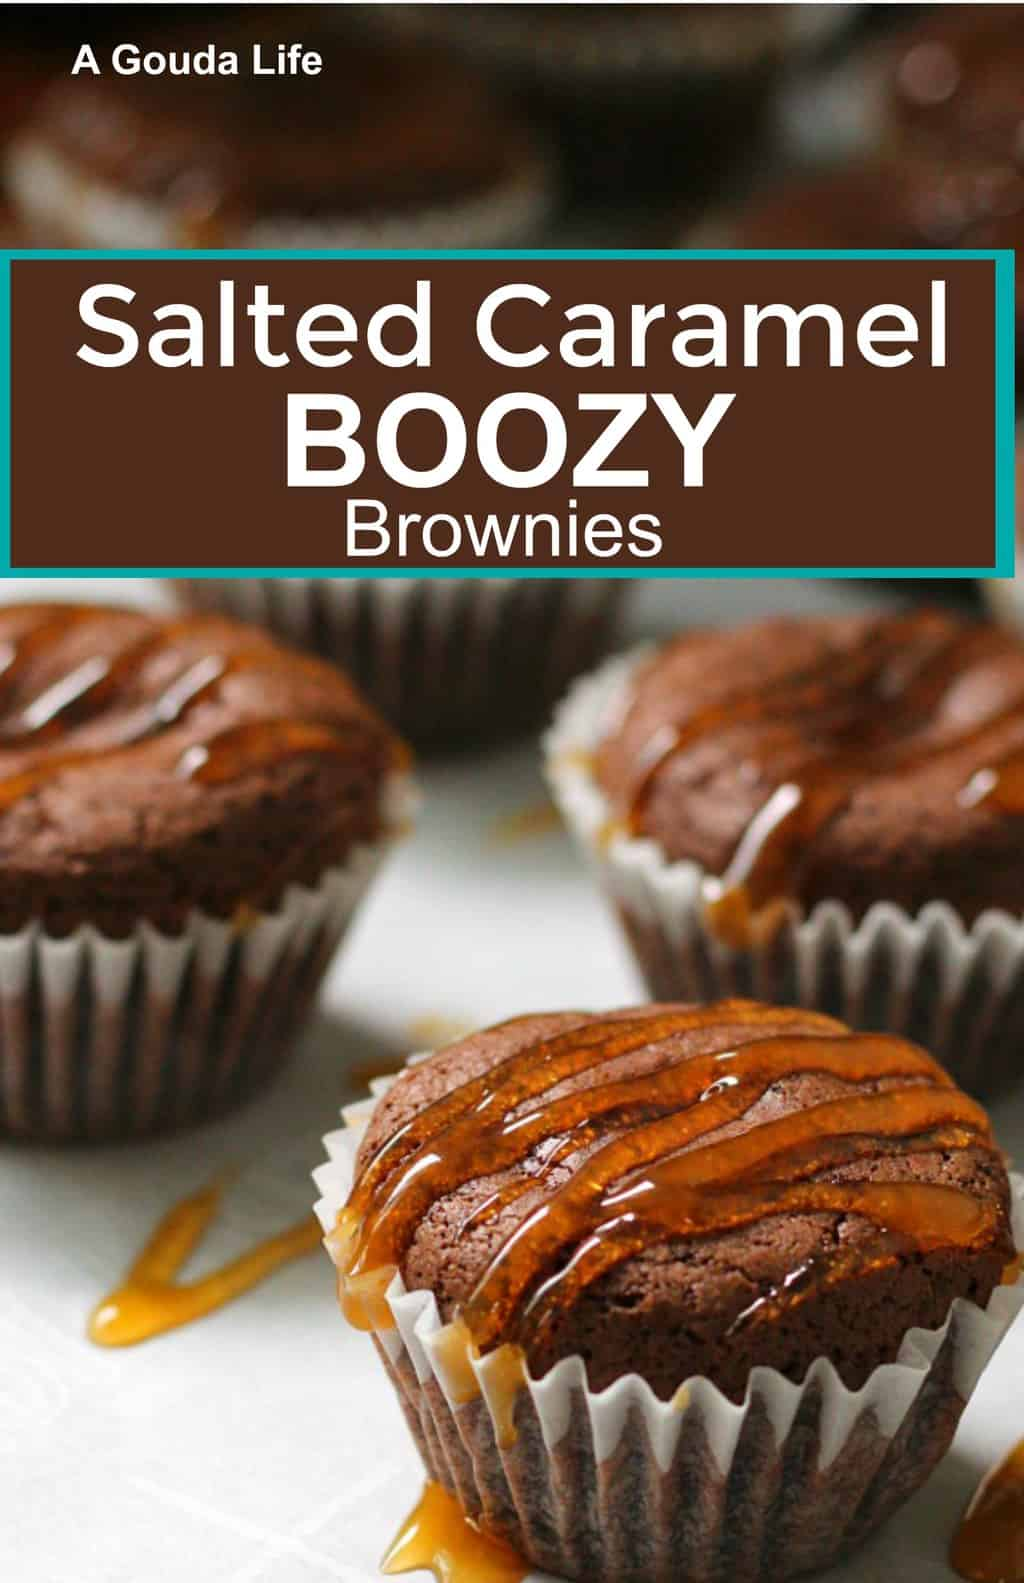 Salted Caramel Boozy Brownies ~ fudgy boozy brownies drizzled with salted caramel. Starts with a box mix, ready for the oven in 5 minutes.